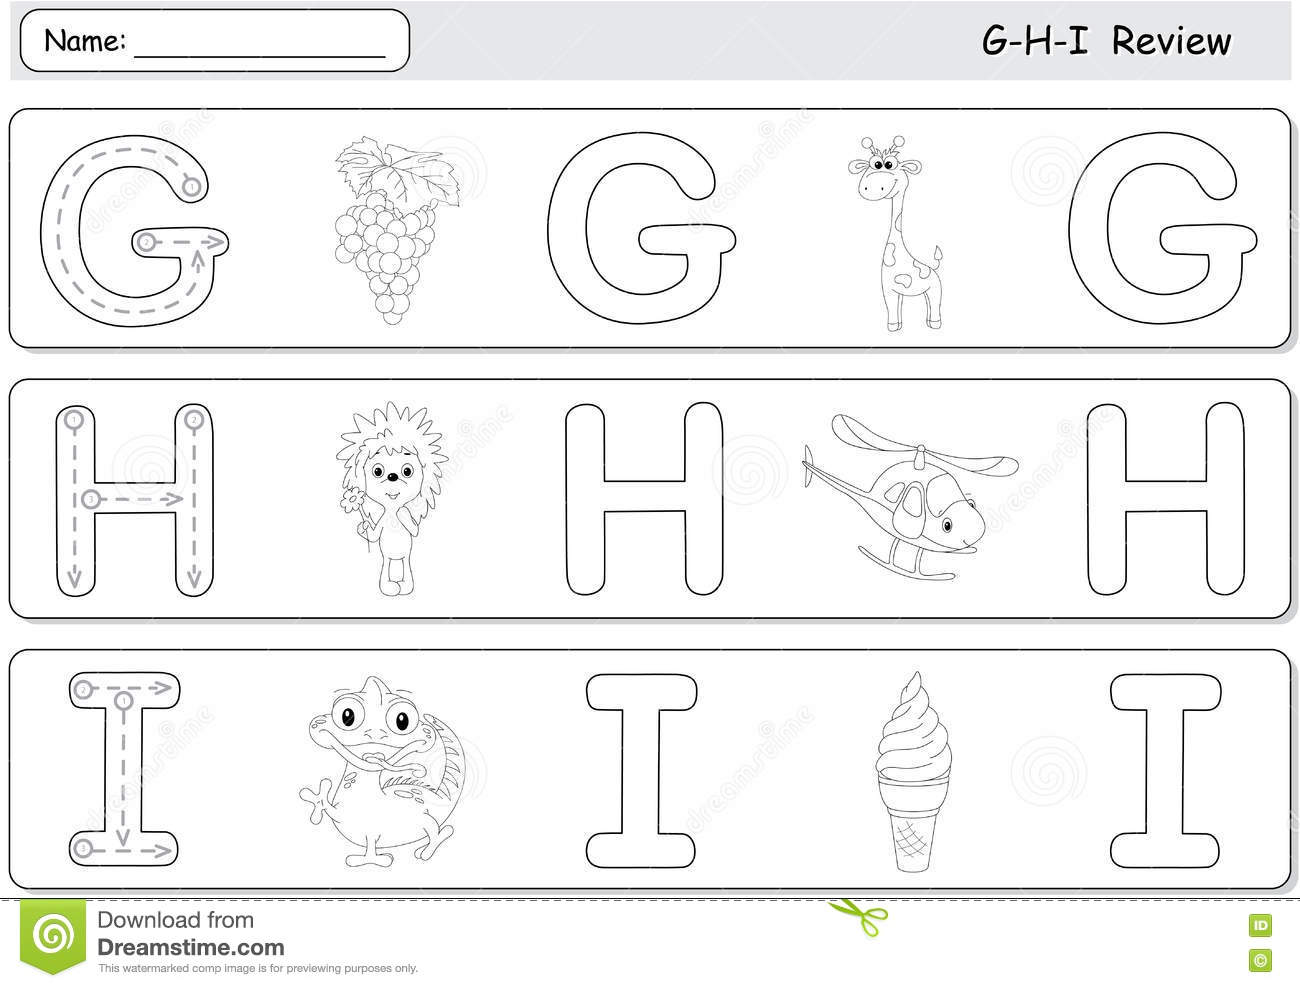 Cartoon G S Giraffe Hedgehog Helicopter Ice Cream